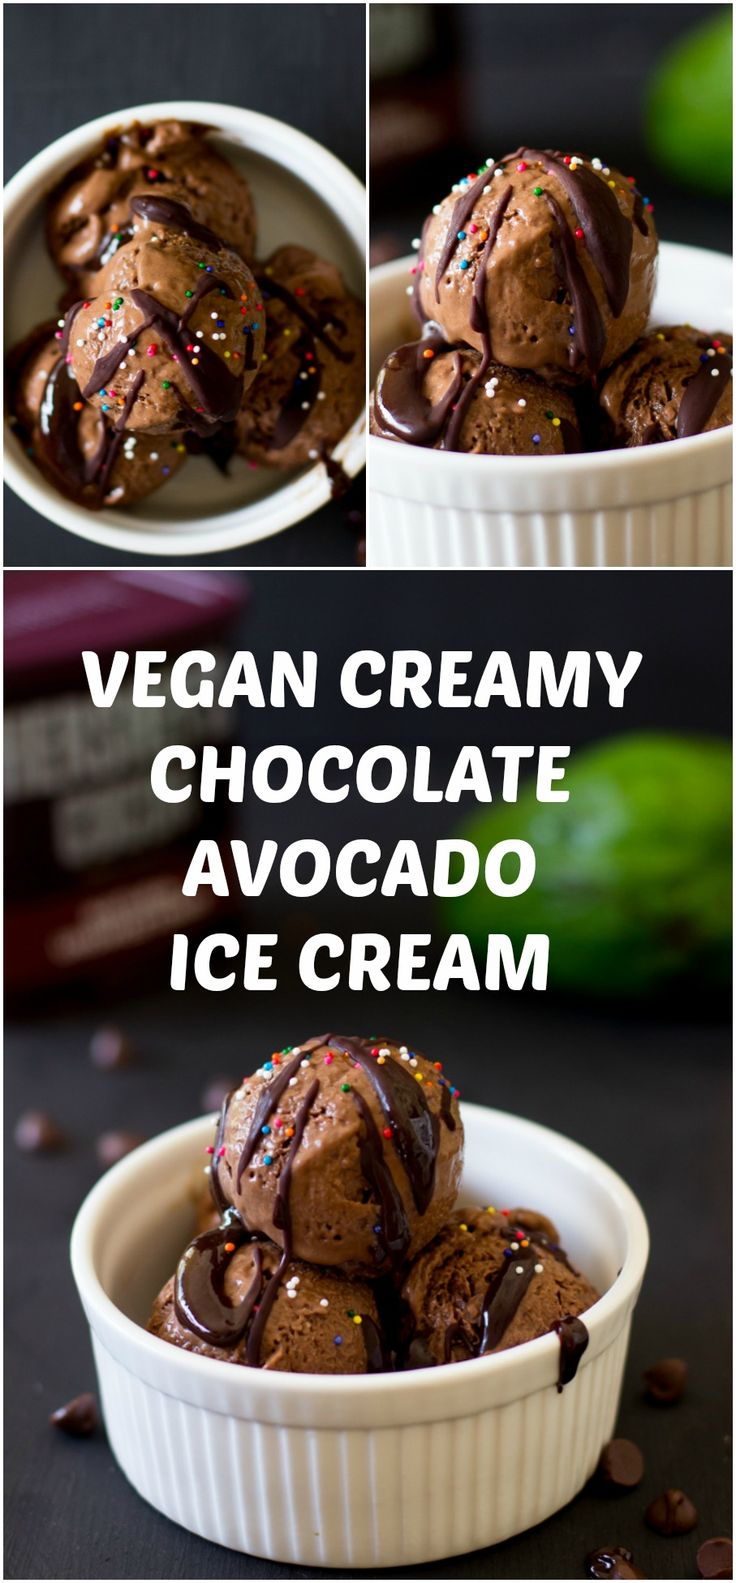 This Vegan Creamy Chocolate-Avocado Ice Cream is not only super chocolatey and delicious but is healthy for you! #vegan #icecream #avocado #healthy